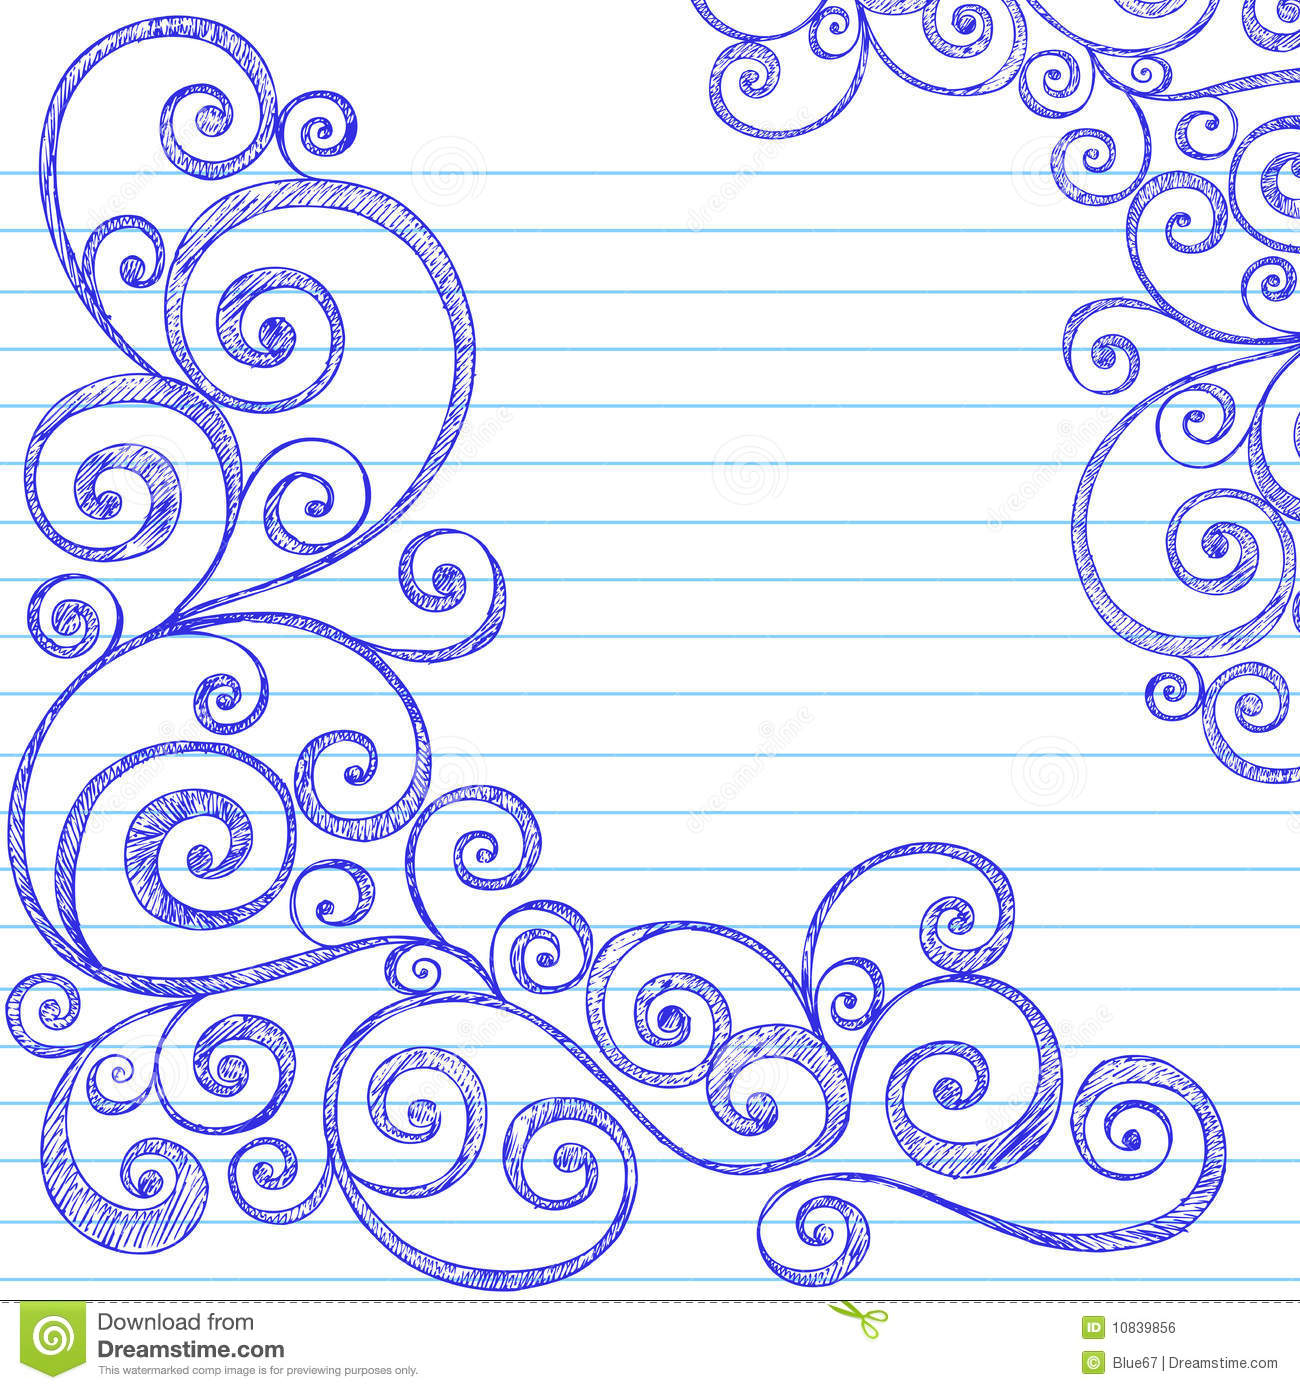 Cute Doodles To Draw On Paper Wwwgalleryhipcom The Hippest Pics